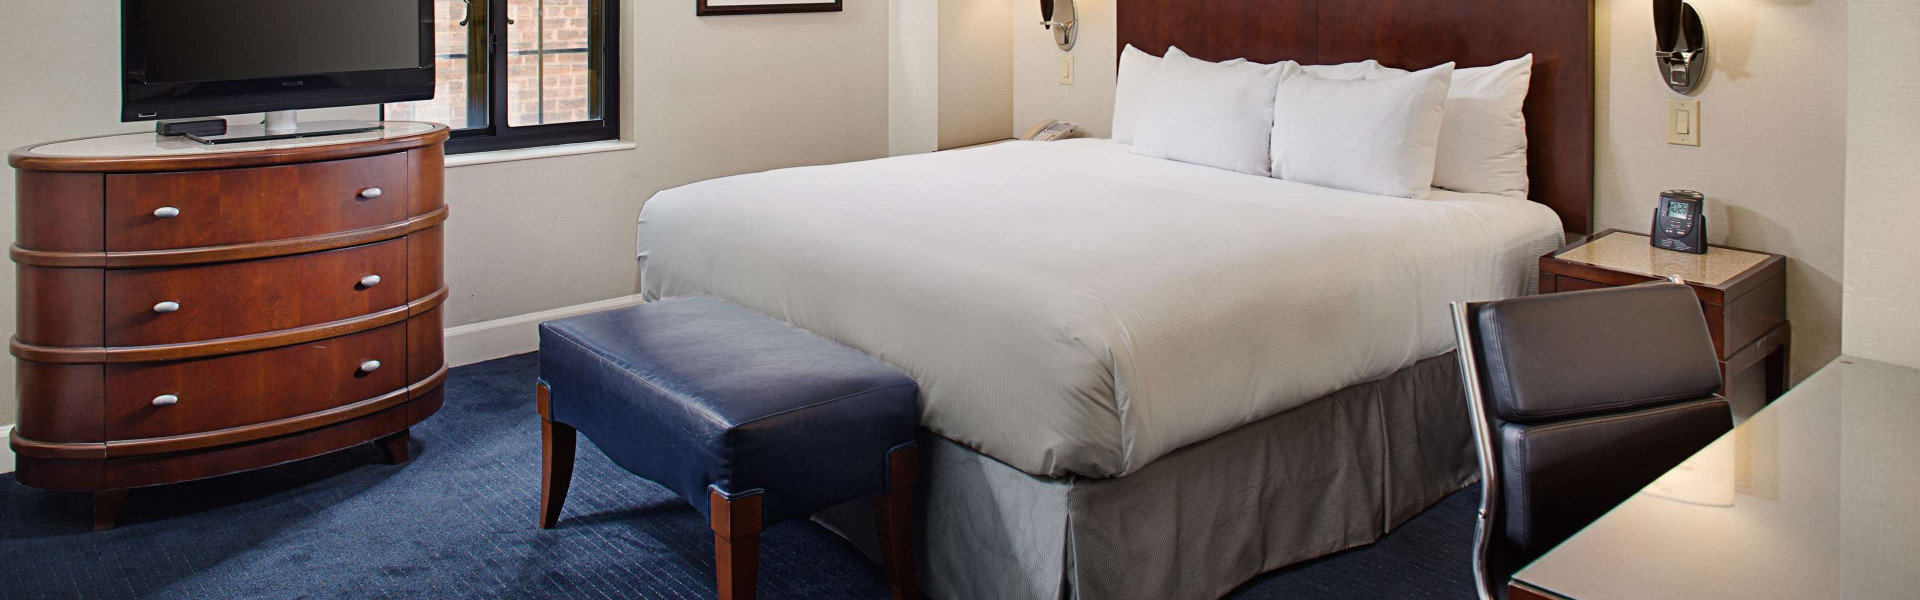 Signature King NYC Hotel Room | Westgate New York Grand Central Hotel | New York Hotels With King Beds